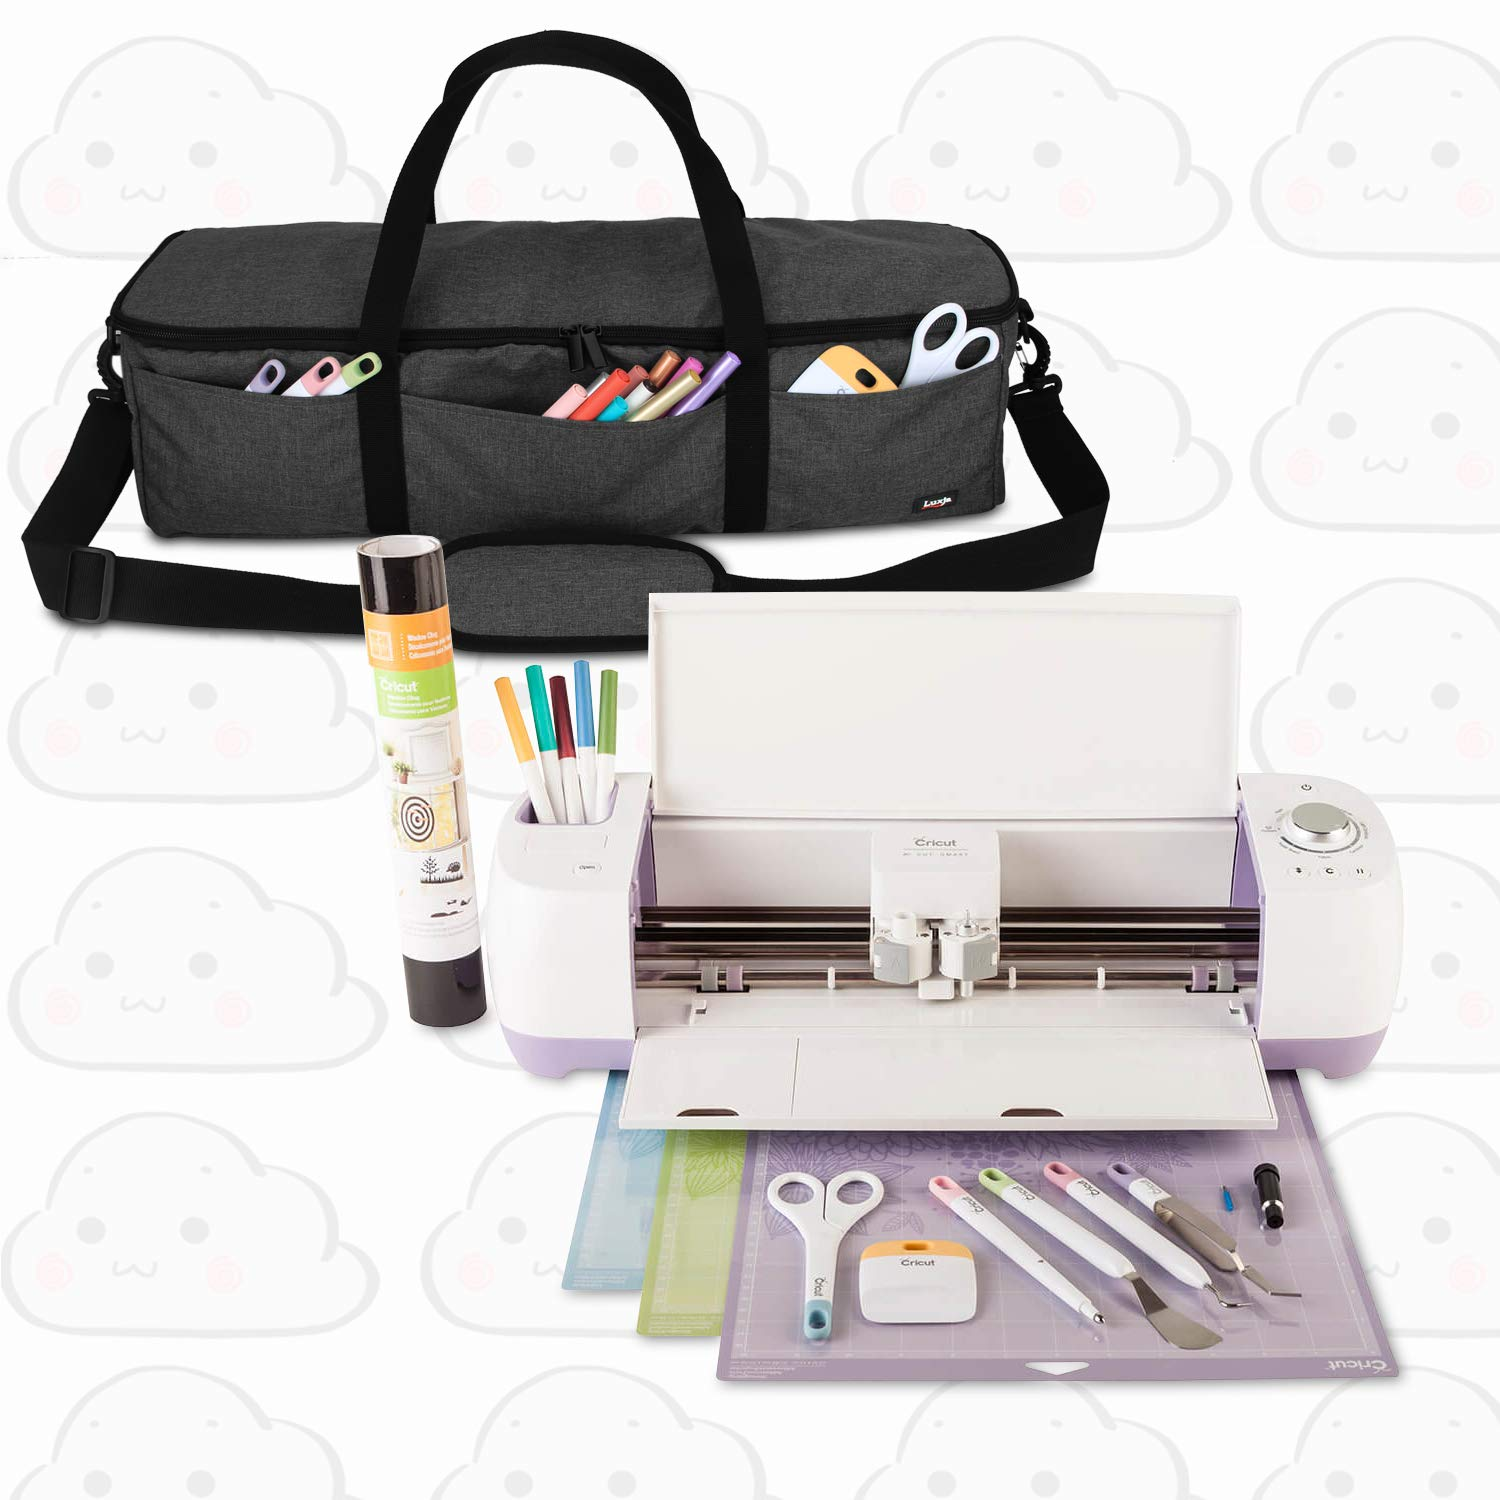 B07N7YS9BS Luxja Foldable Bag Compatible with Cricut Explore Air and Maker, Carrying Bag Compatible with Cricut Explore Air and Supplies (Bag Only), Black 71g47gVQulL